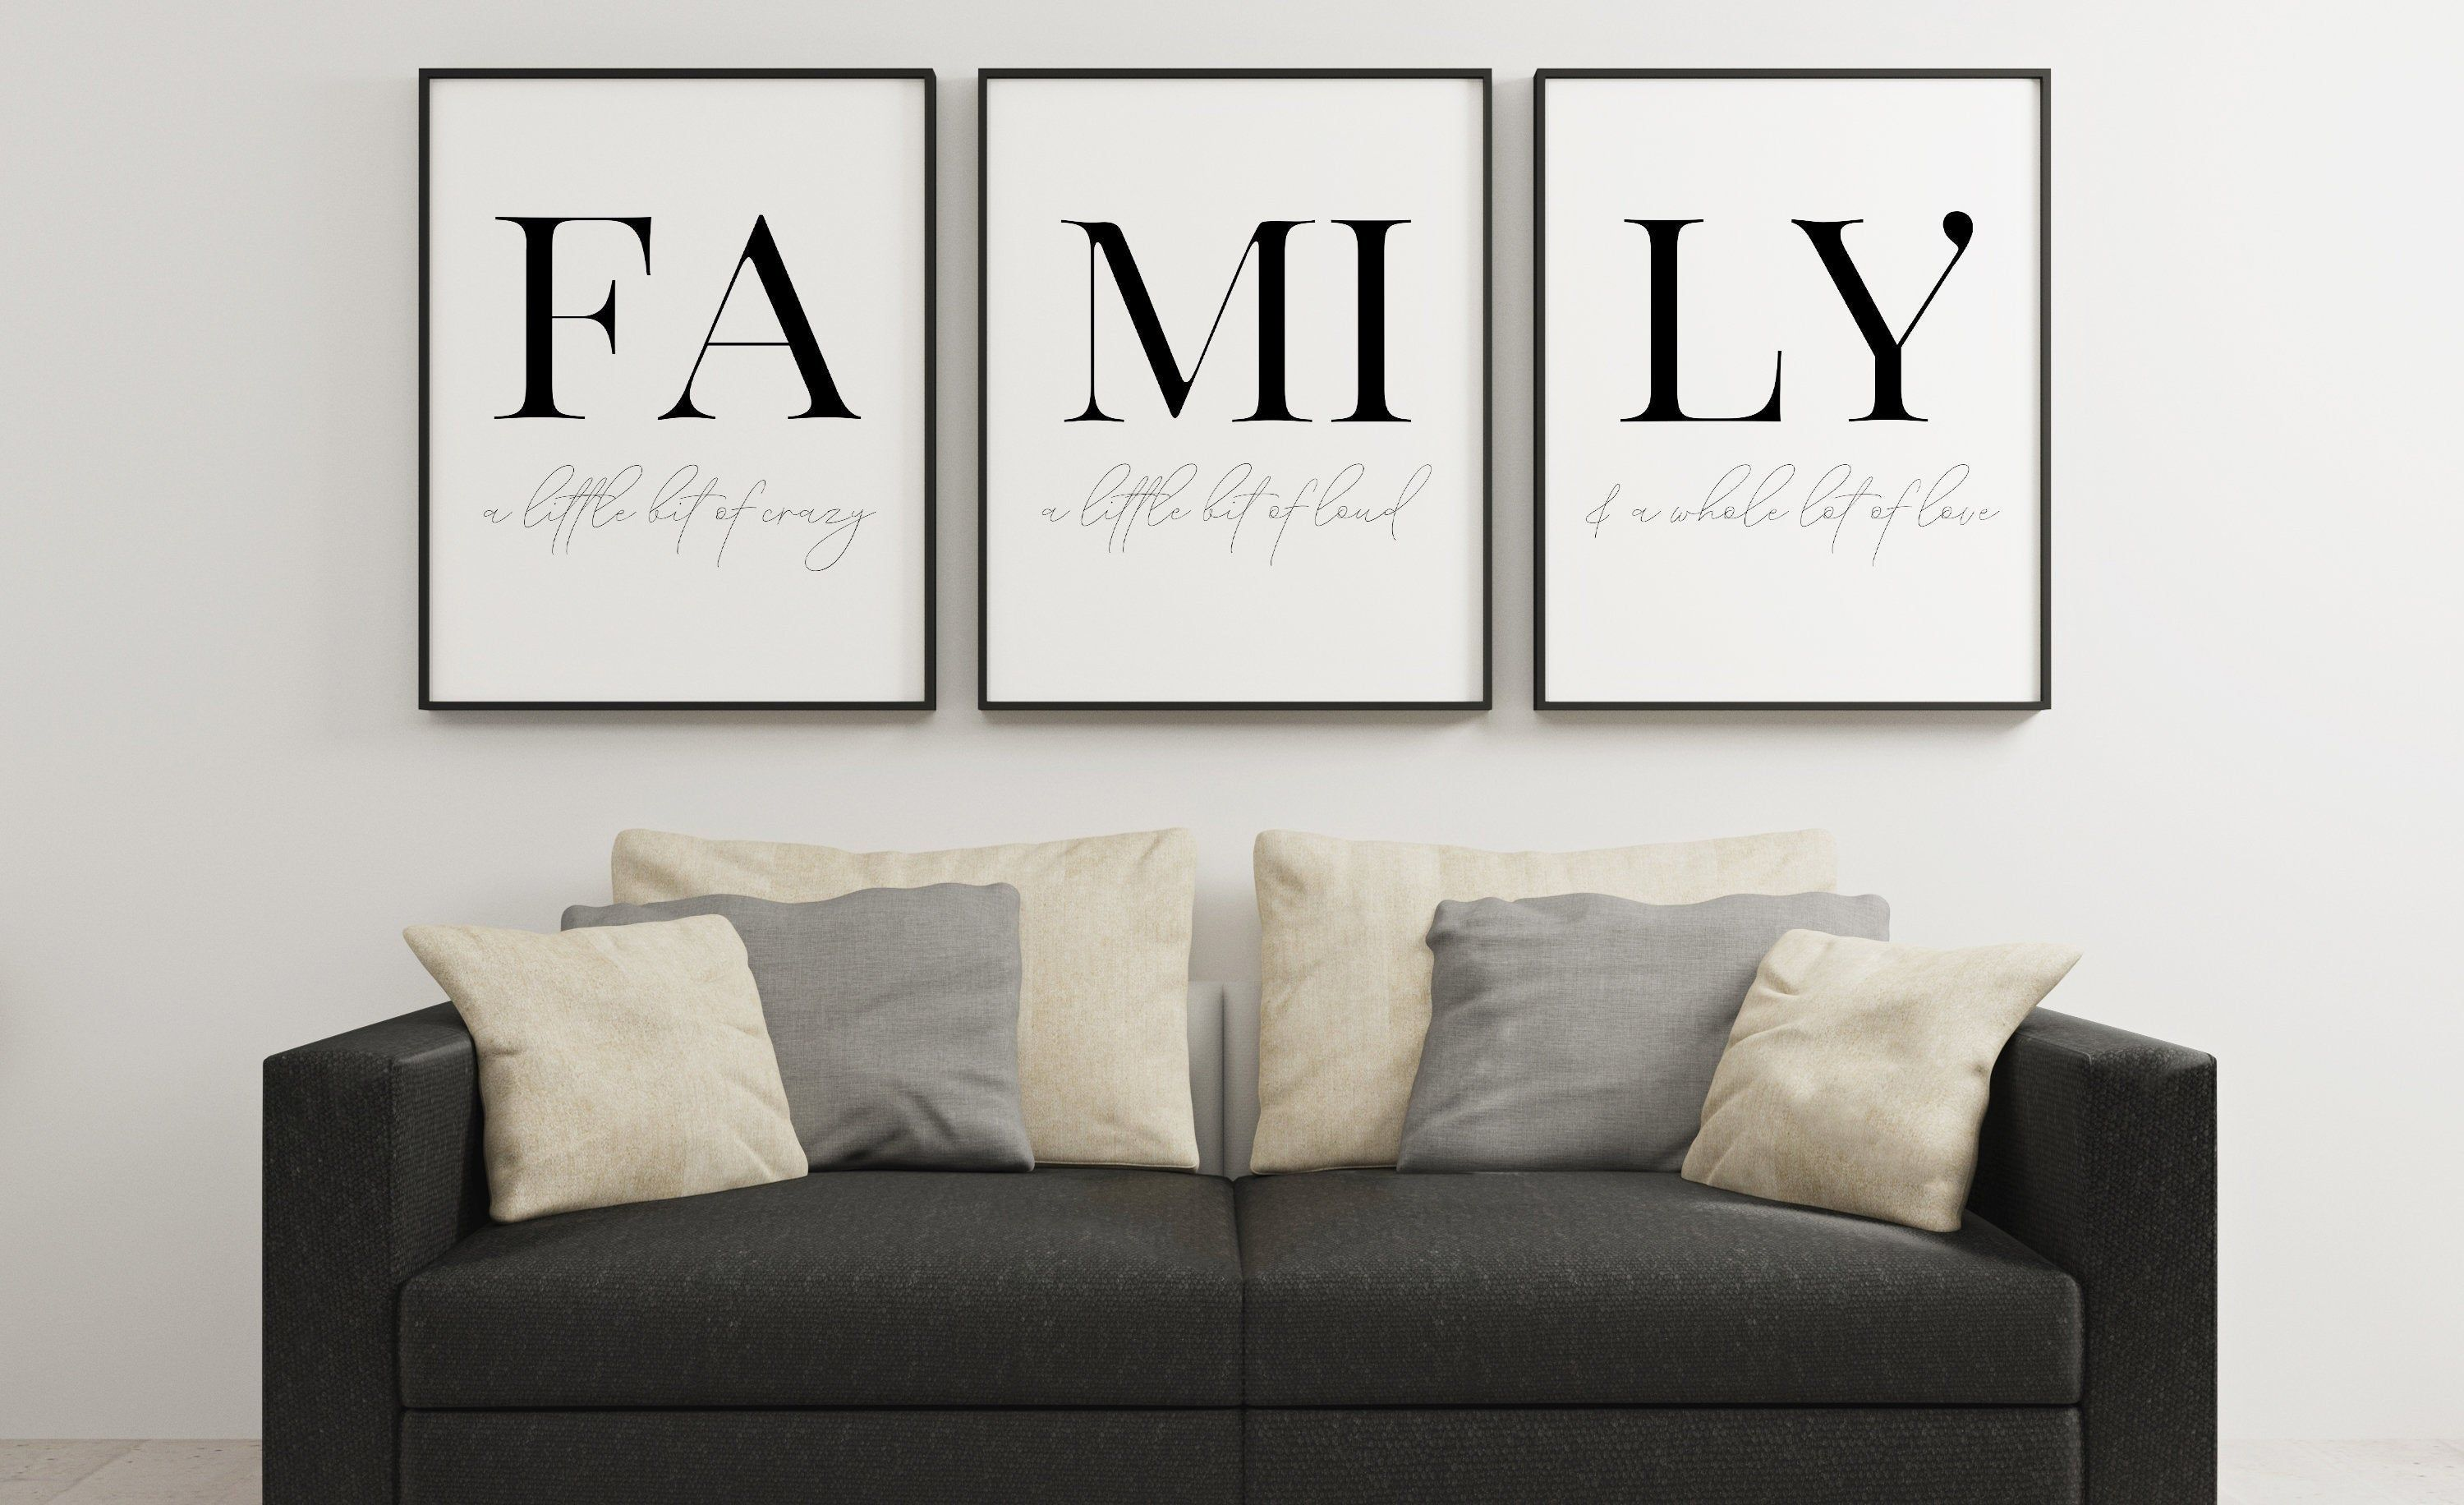 FAMILY SIGN, Home Decor sign,Home Sweet Home,Home Decor Wall Art,Family Prints,Set of 3 Prints,Bedroom Decor,Family Tree,Family Wall Art